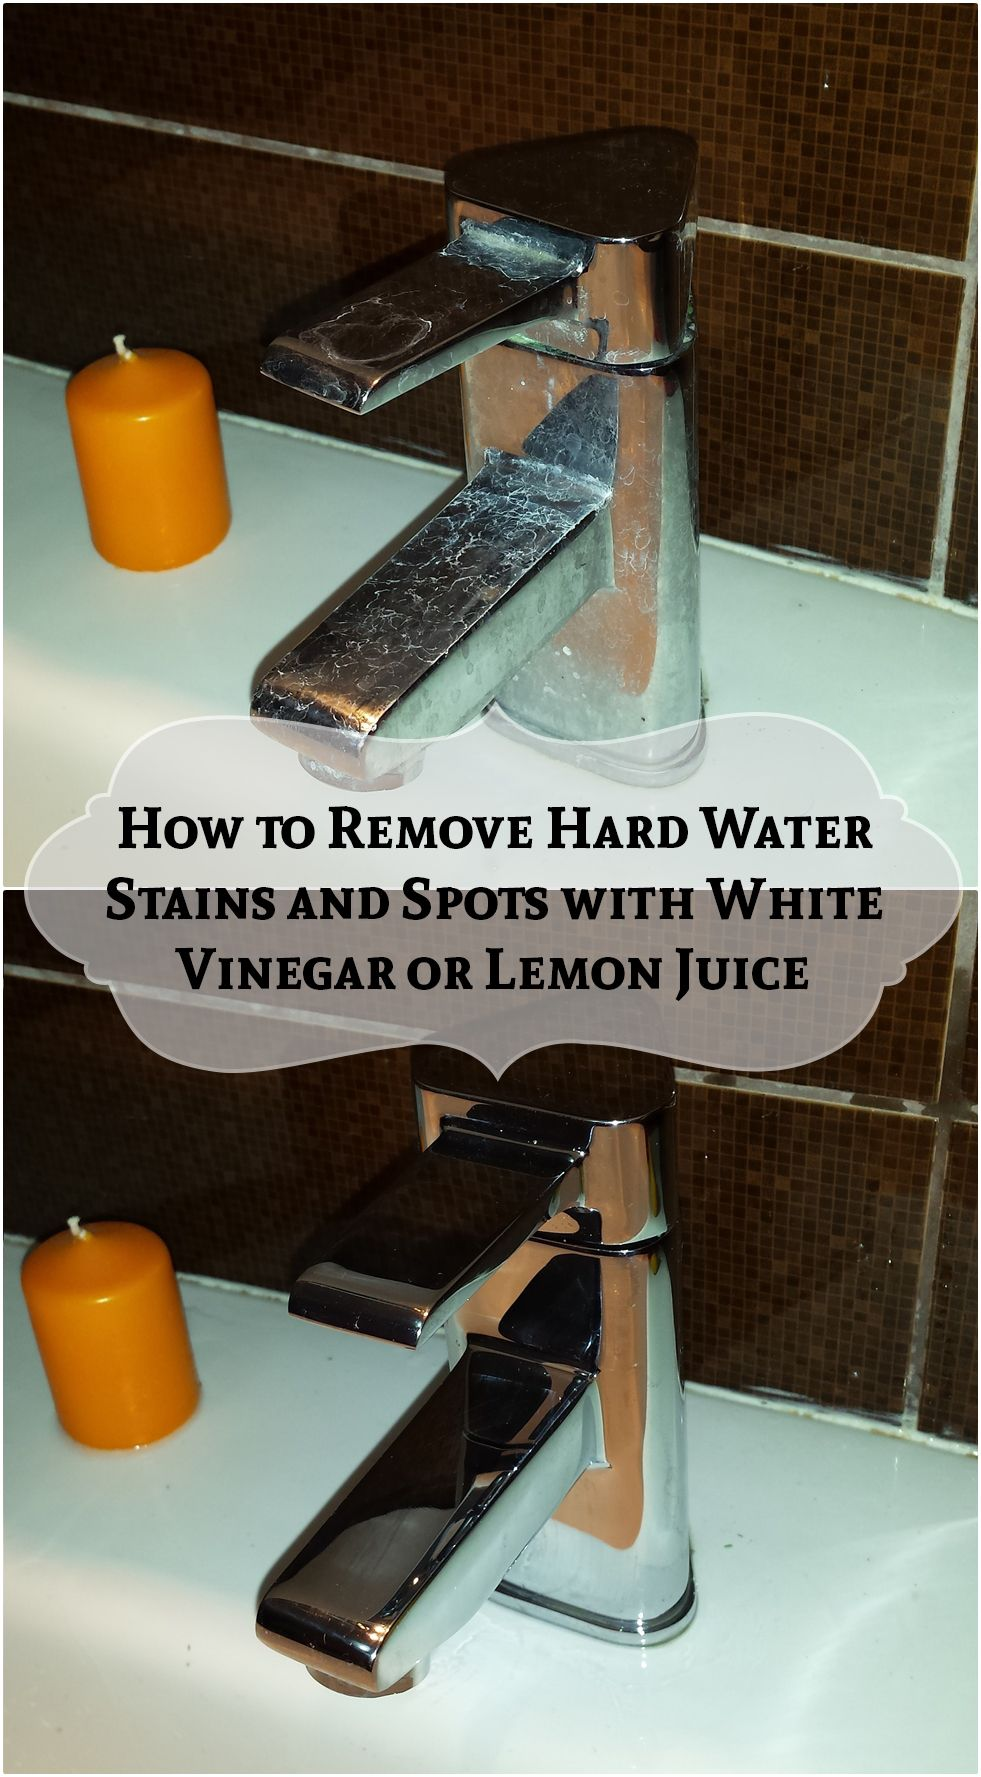 How To Remove Hard Water Stains And Spots With White